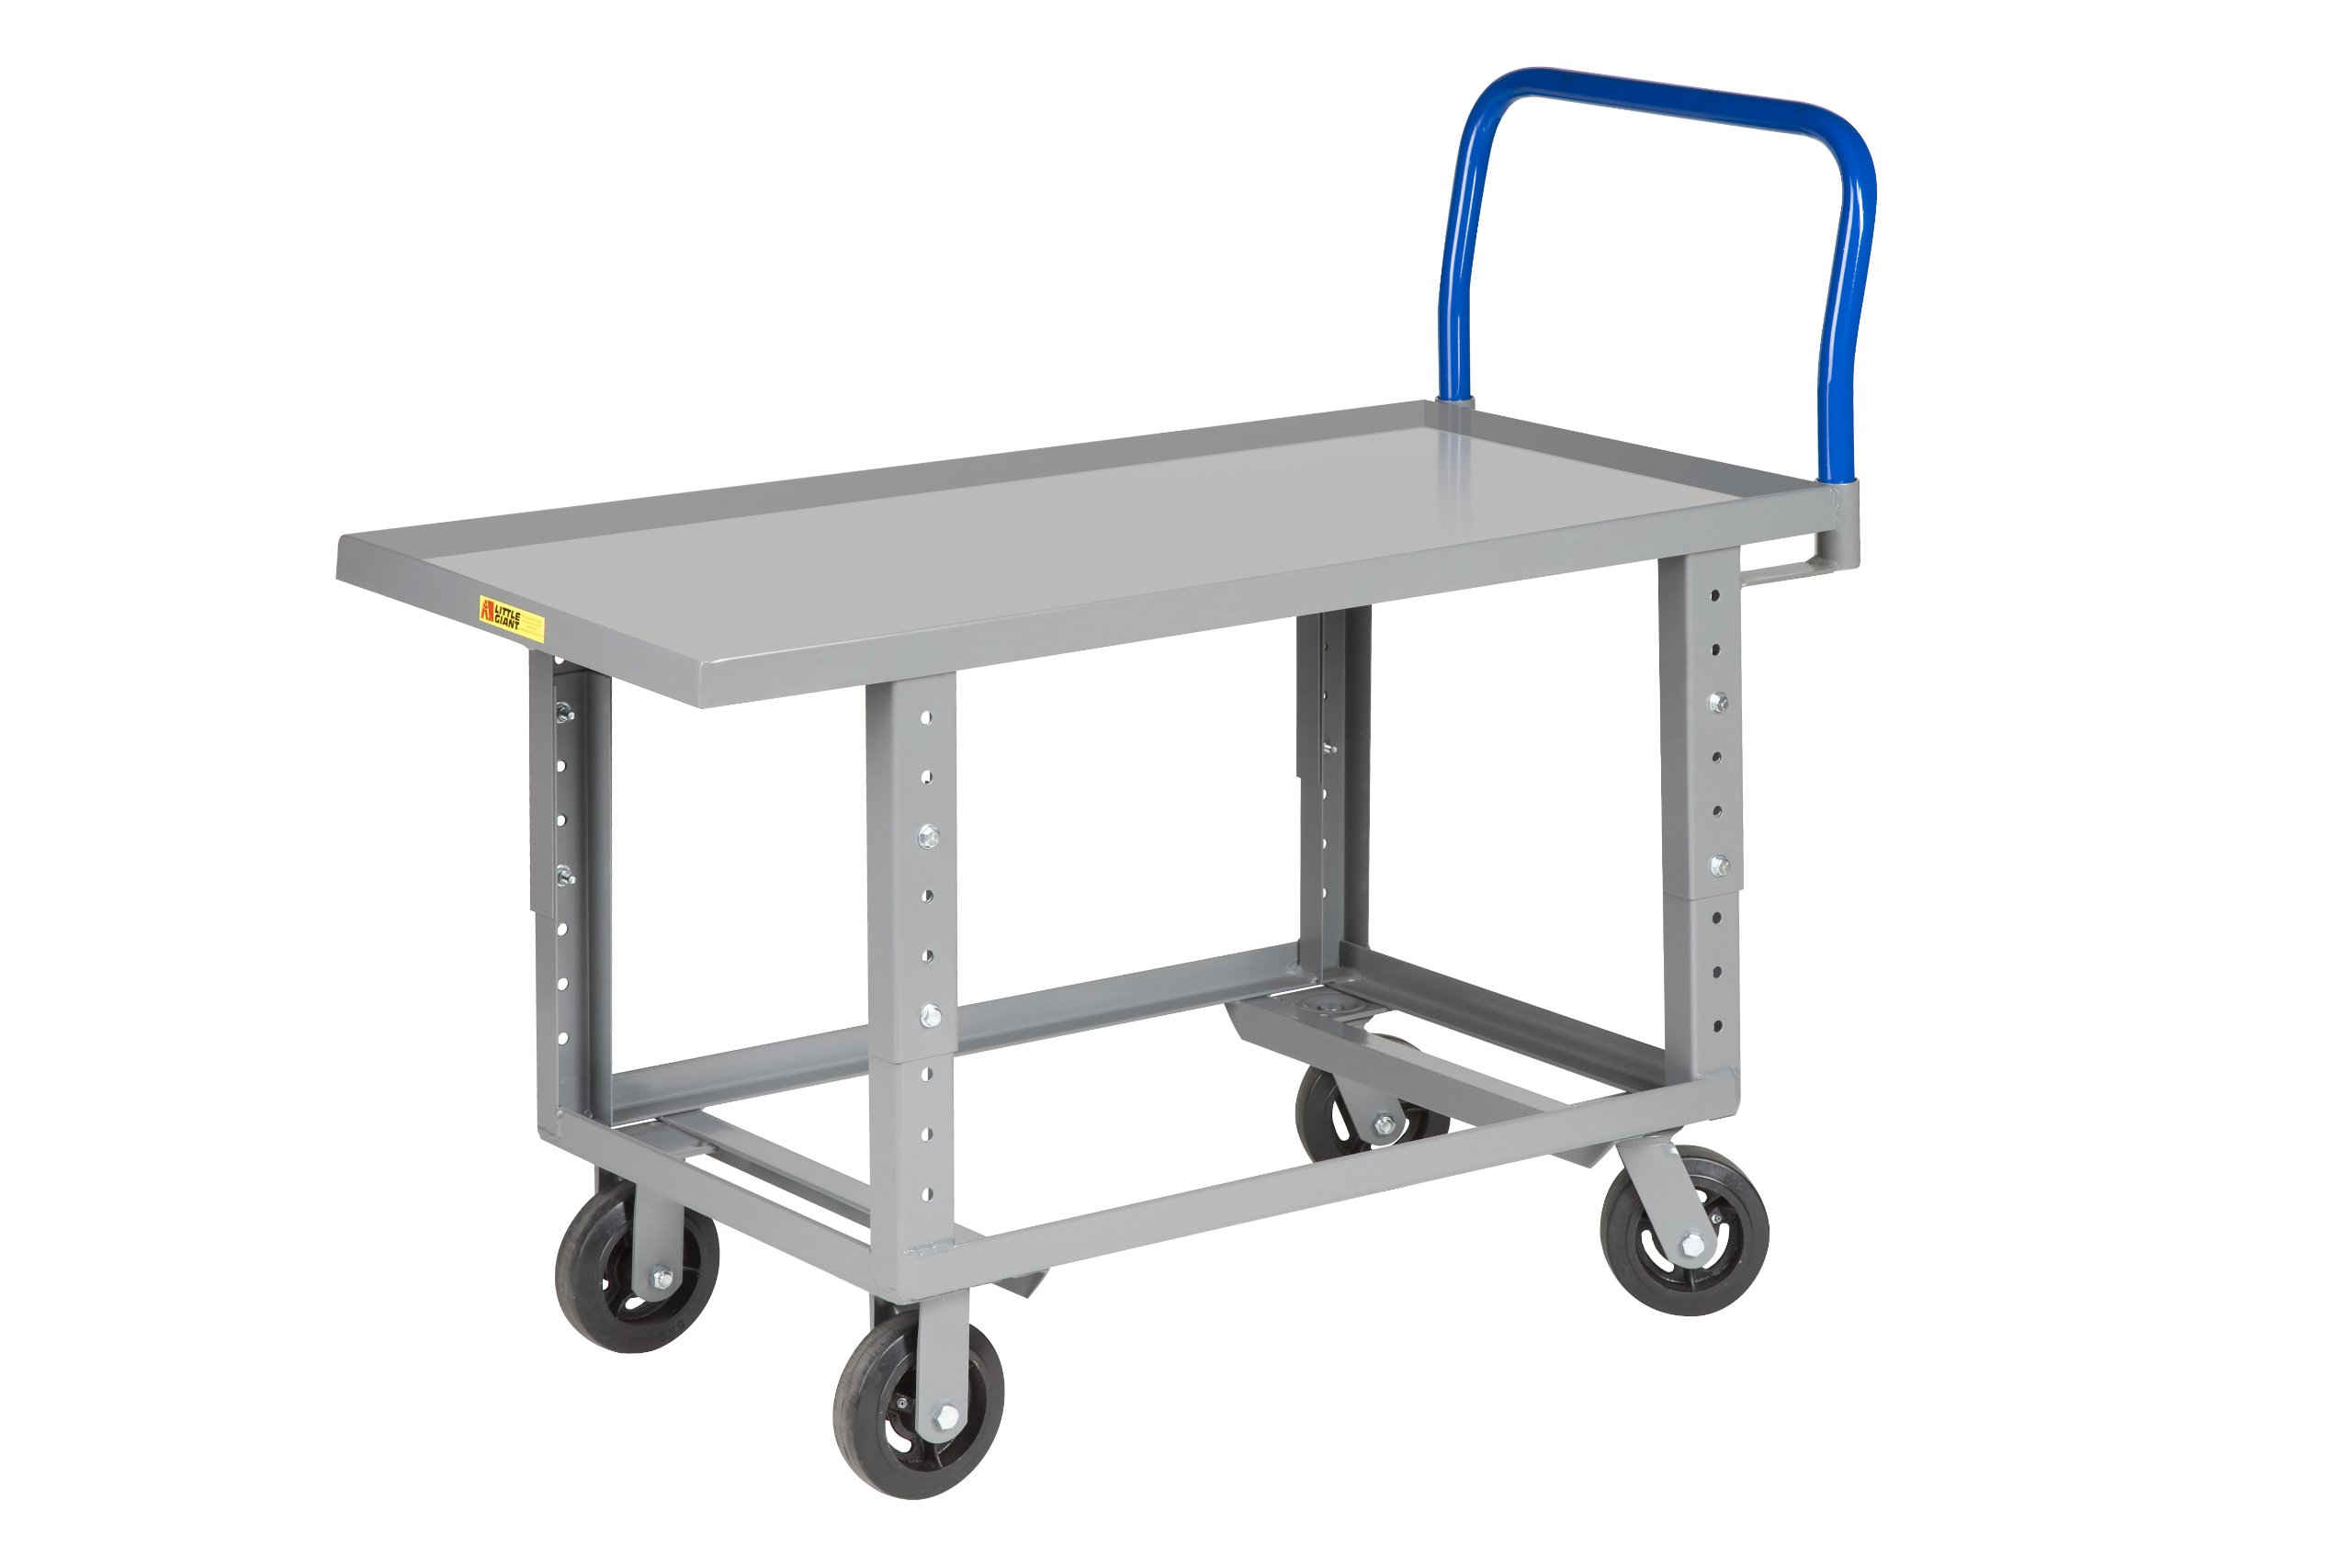 Little Giant RNL-3060-6MR-AH 12-Gauge Steel Ergonomic Lip Edge Adjustable Work-Height Platform Truck, 2000 lbs Capacity, 60'' Length x 30'' Width